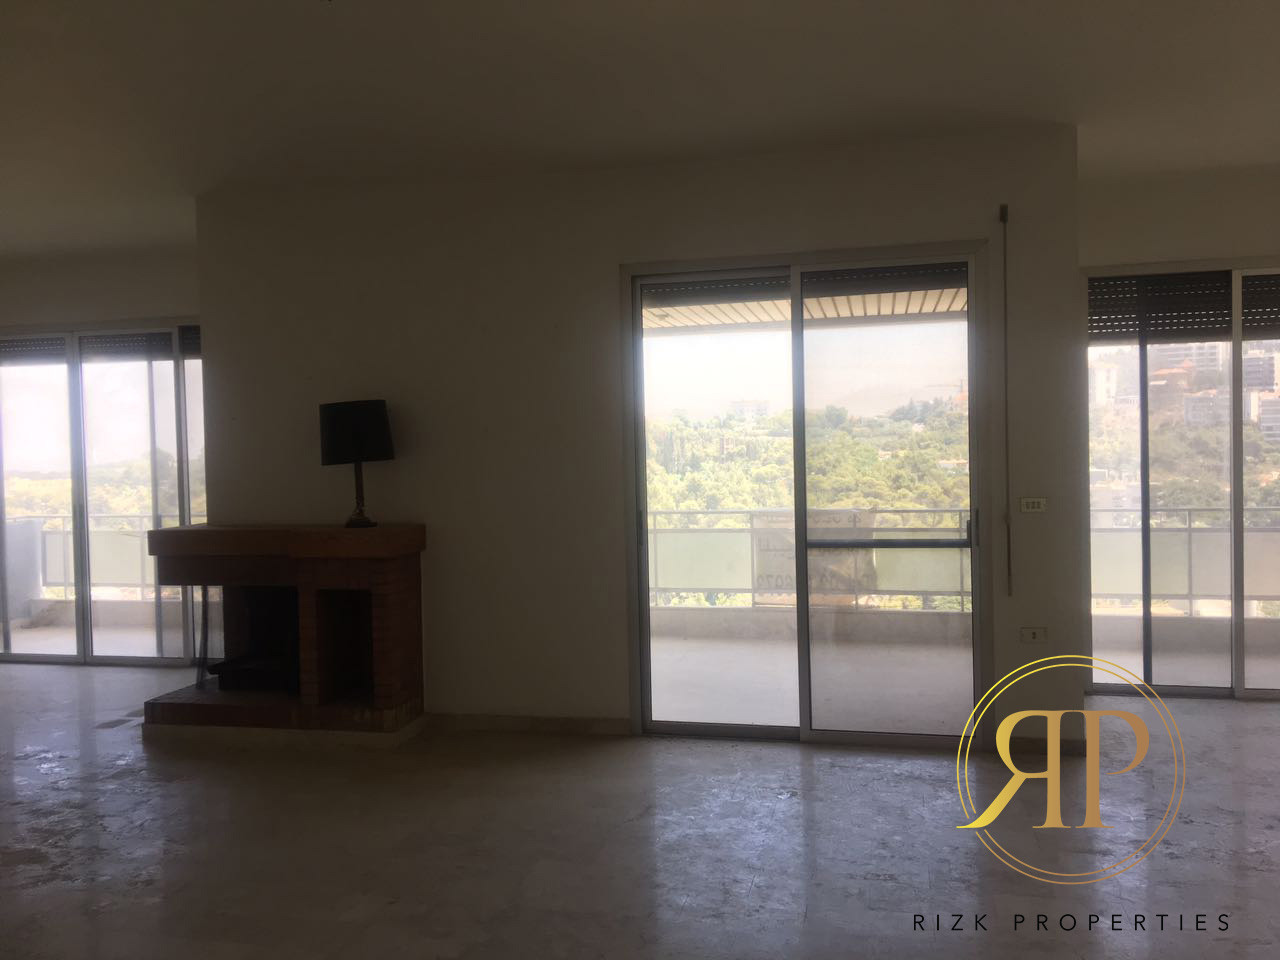 Well-located Apartment in Baabda - Strategical & Panoramic View Over Presidential Palace